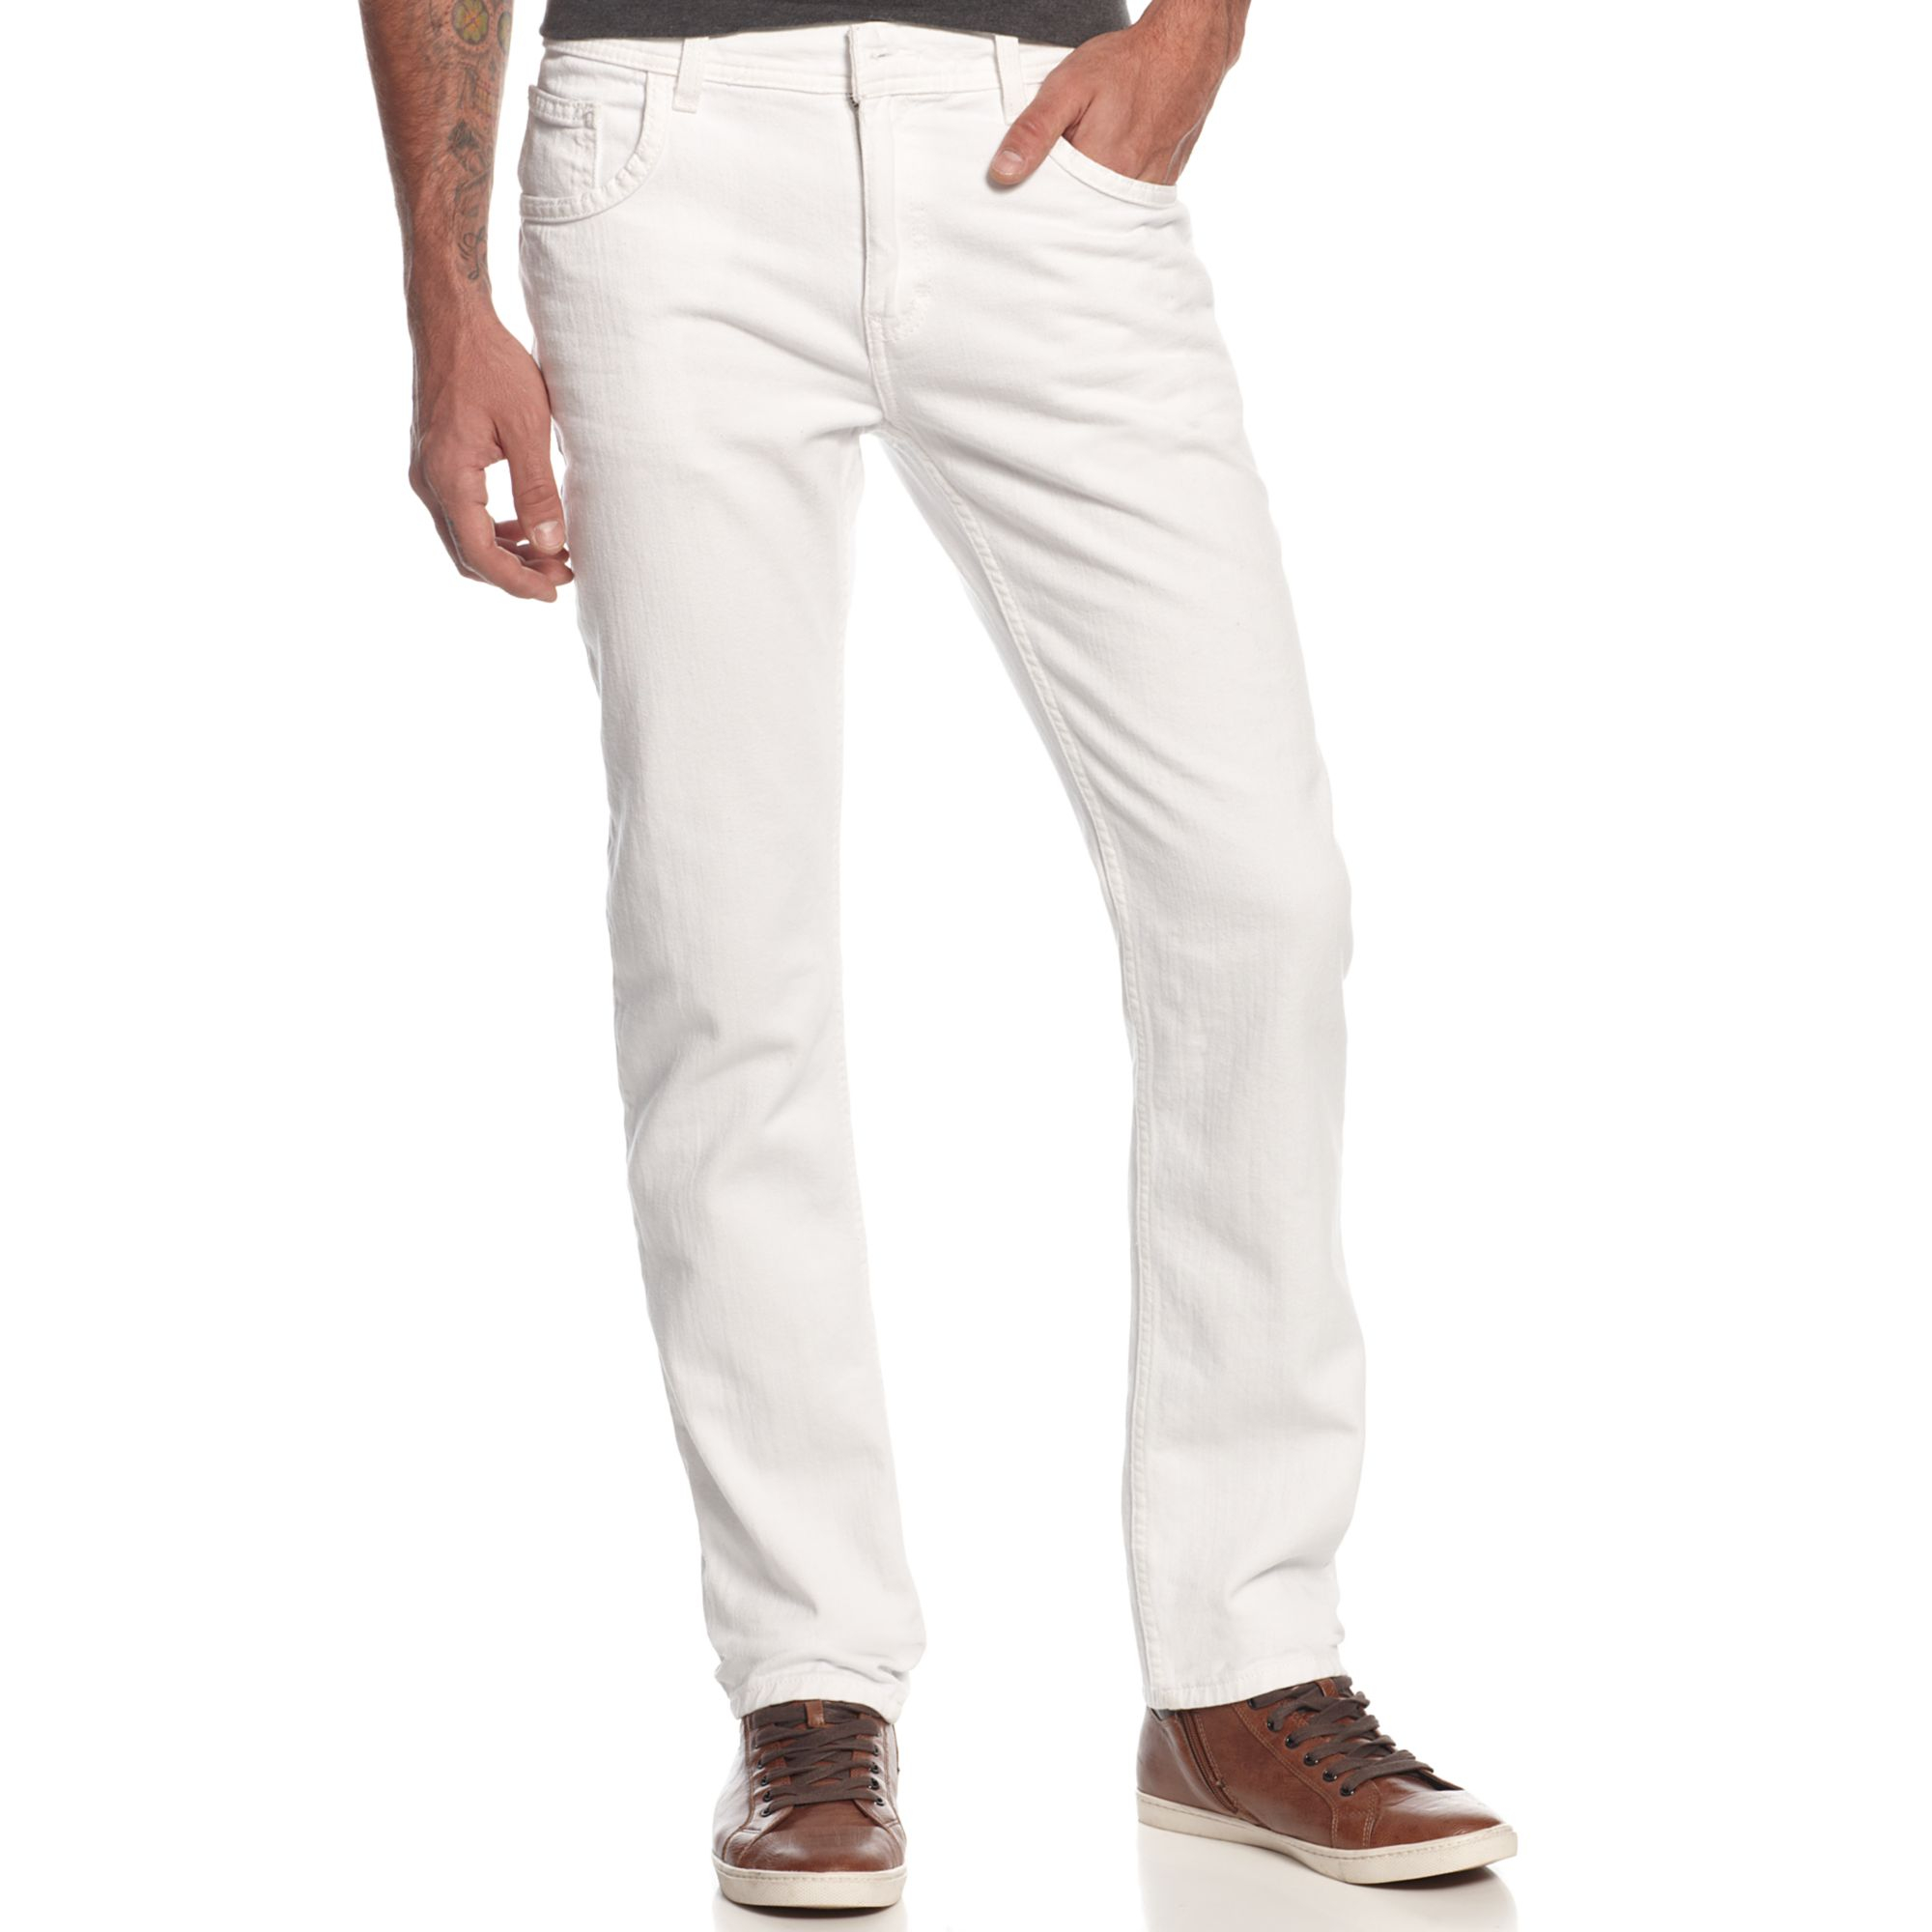 Inc international concepts Big Tall Jax Skinny Jeans in White for